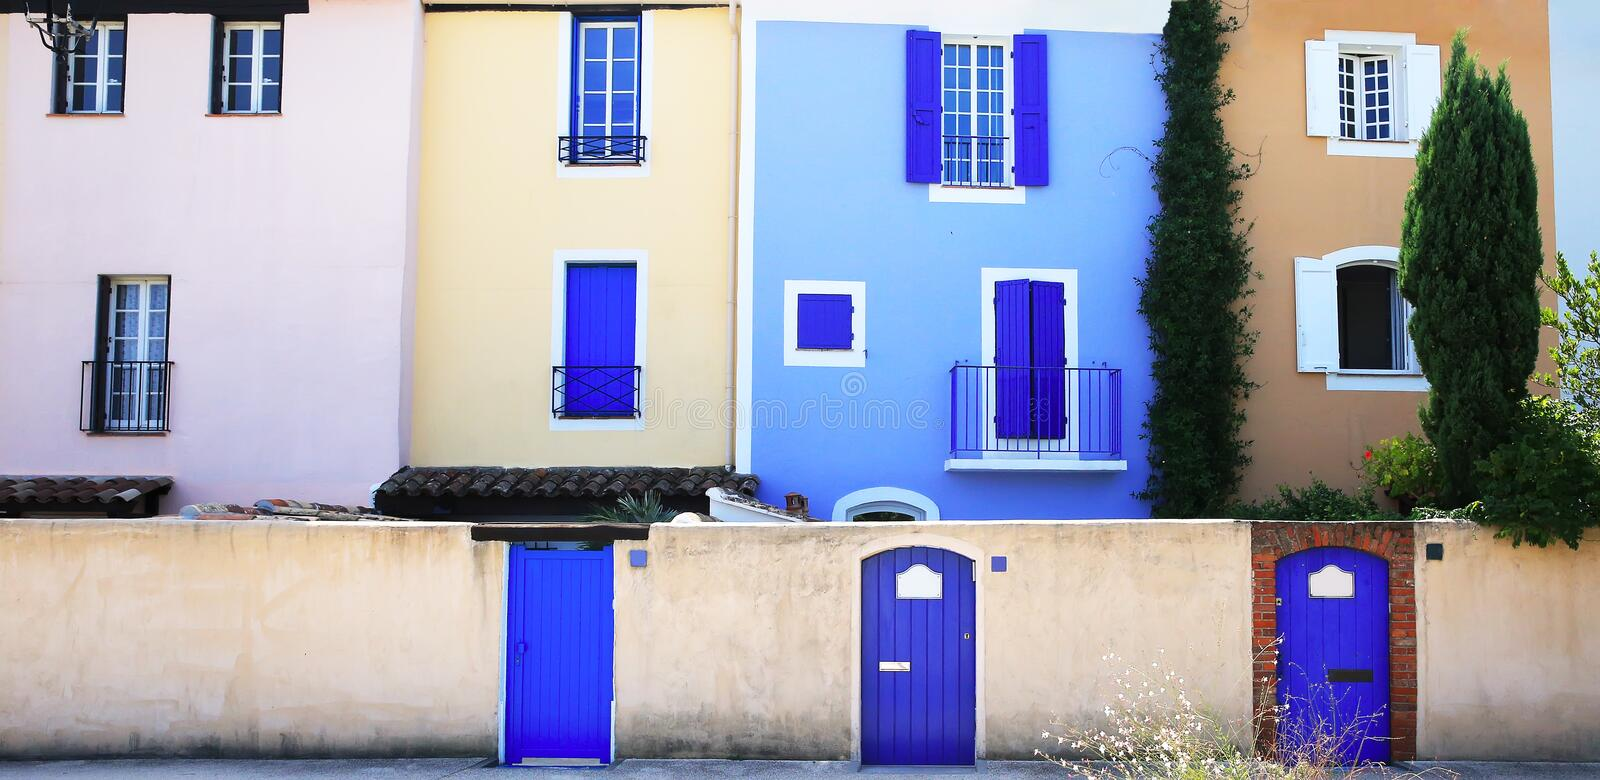 Download Colorful Wall With Windows And Doors Stock Image - Image of france, color: 77268385